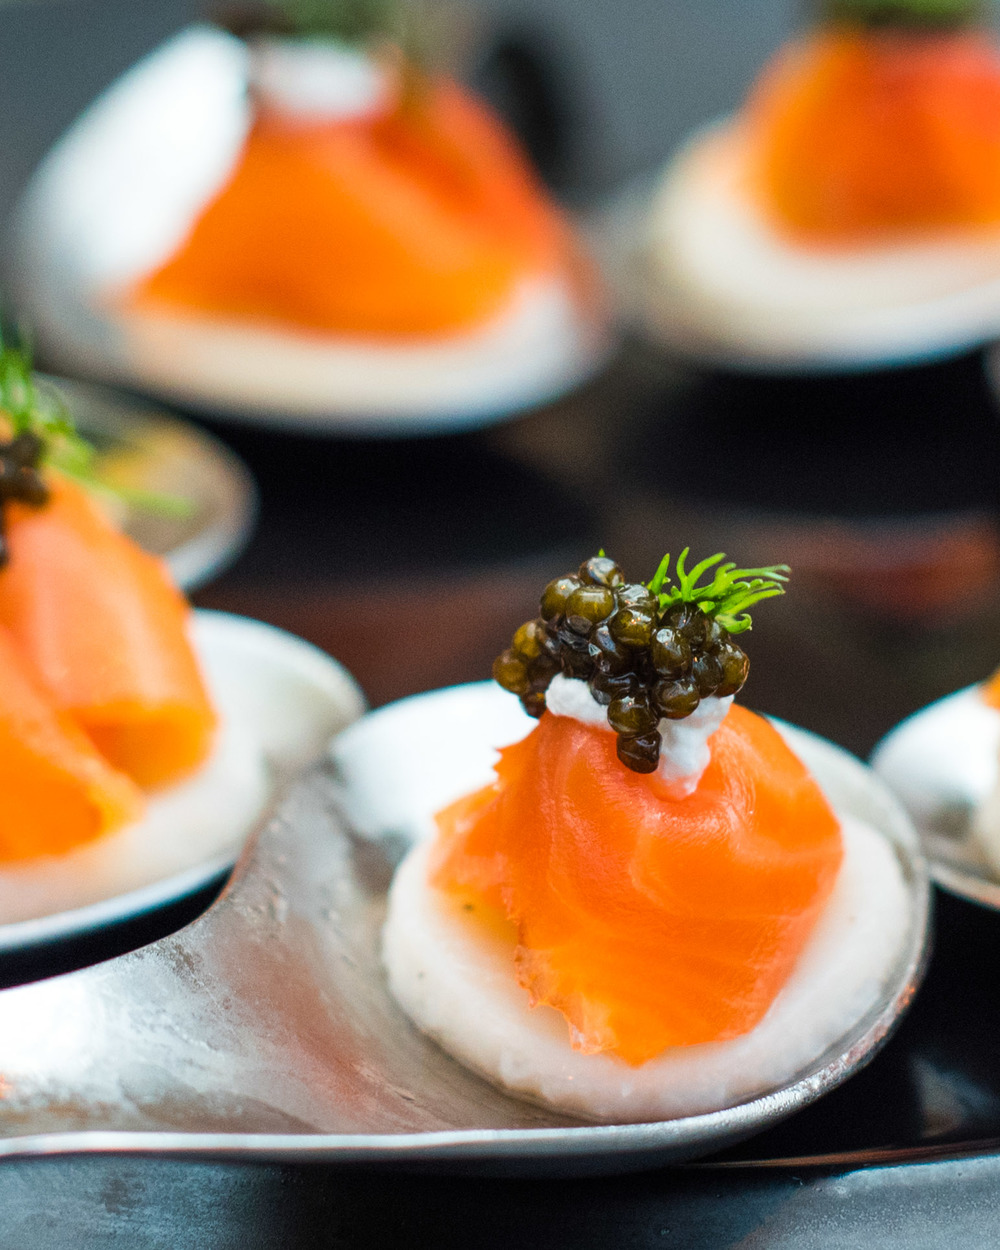 Hickory Smoked Salmon with Caviar Cream served on Dill Potato